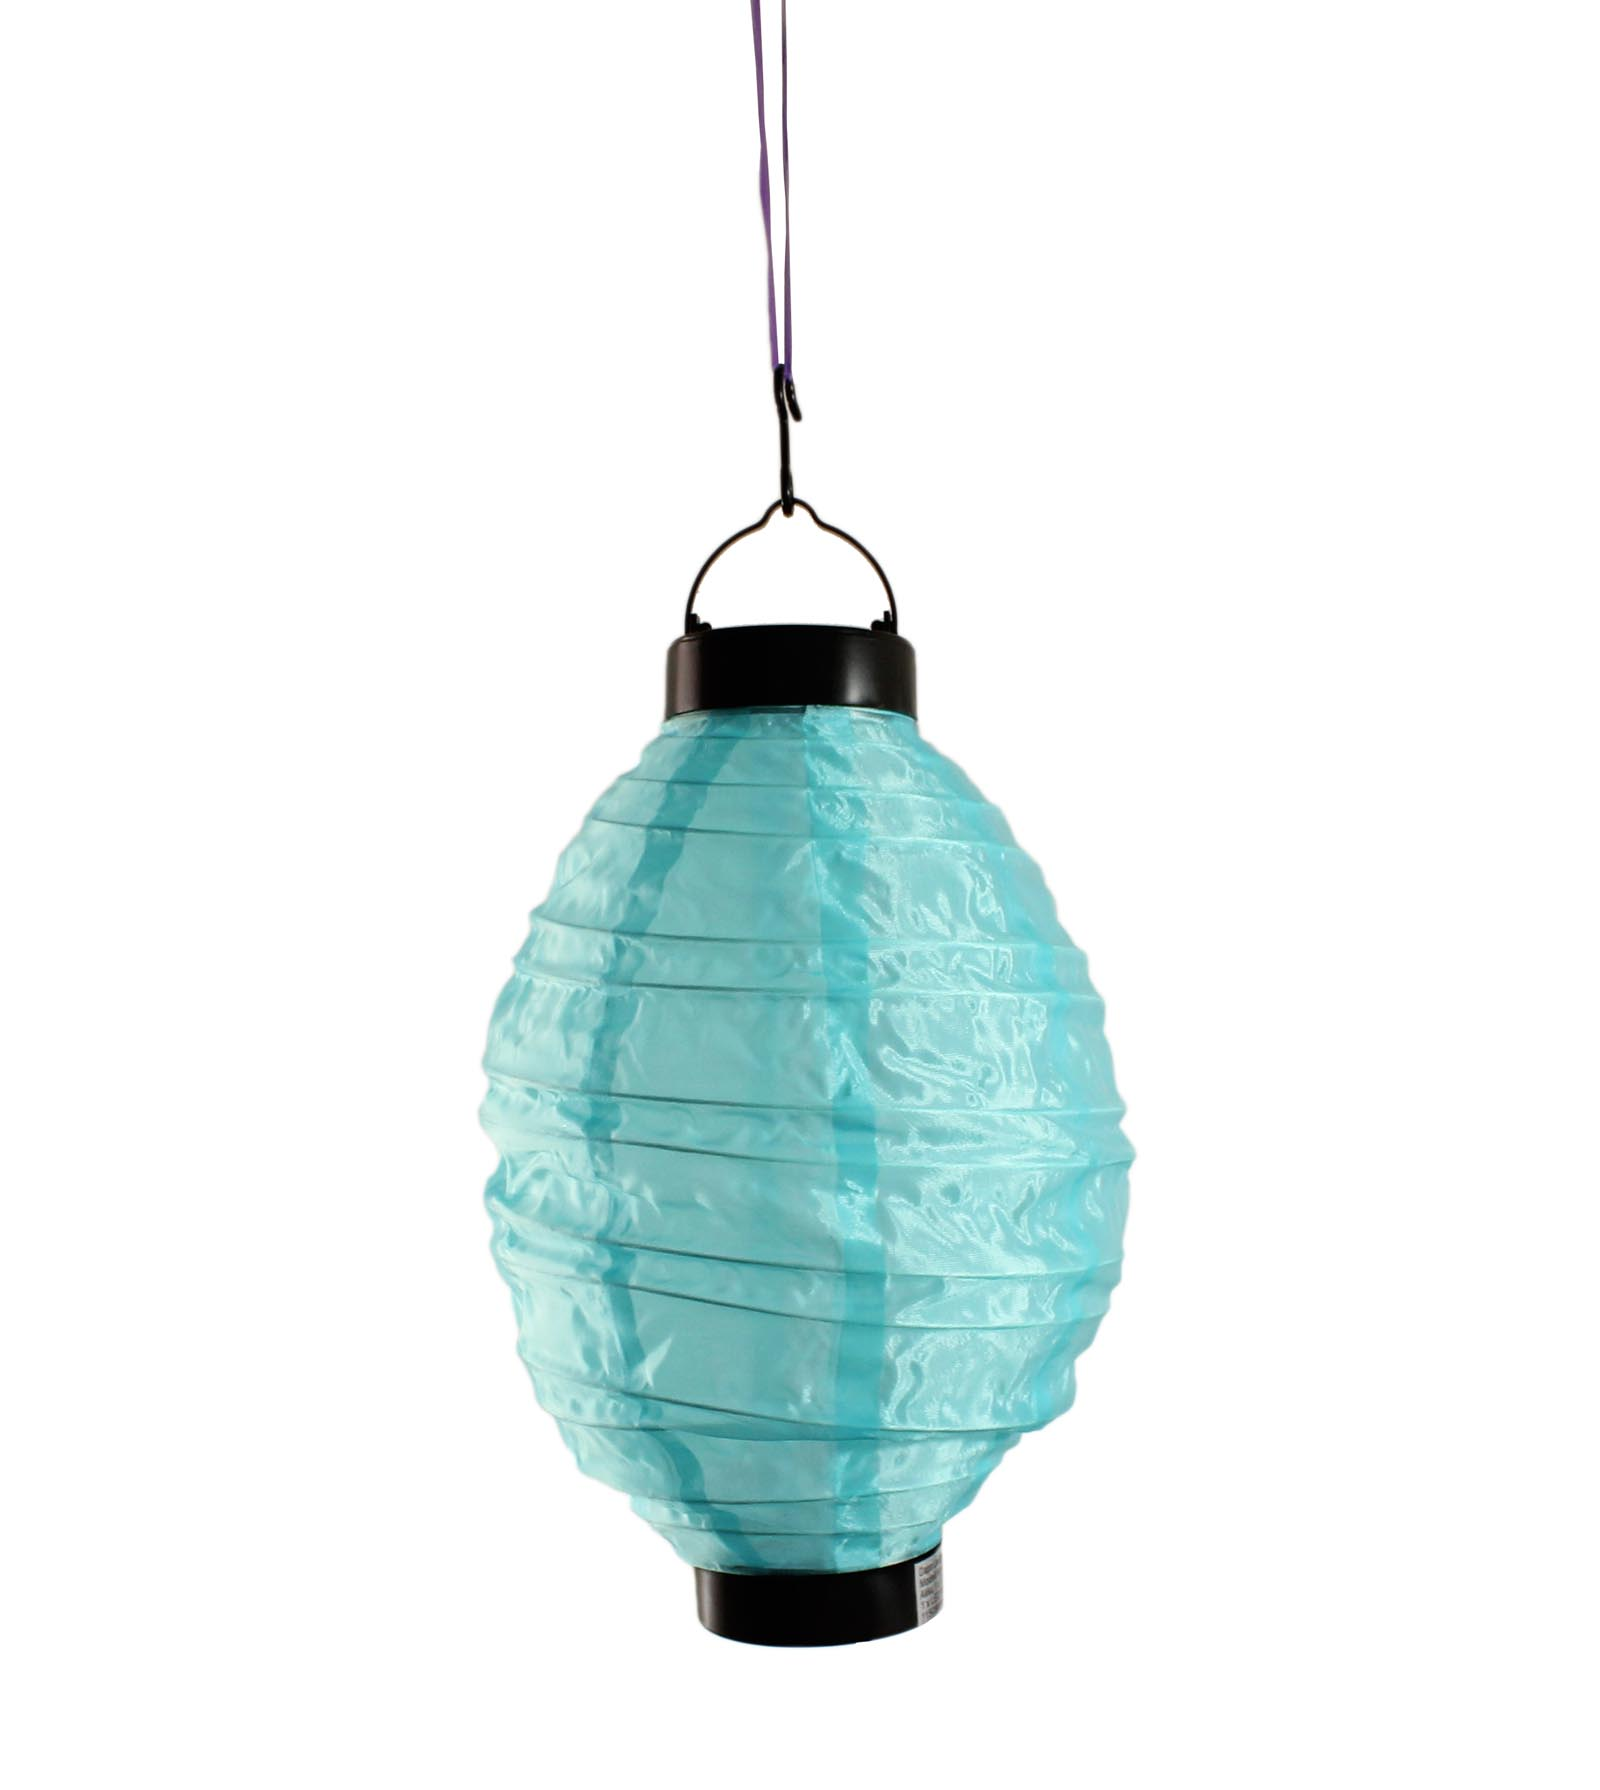 solar led lampion solarleuchte solarlampe garten lampe laterne 20x30cm ebay. Black Bedroom Furniture Sets. Home Design Ideas